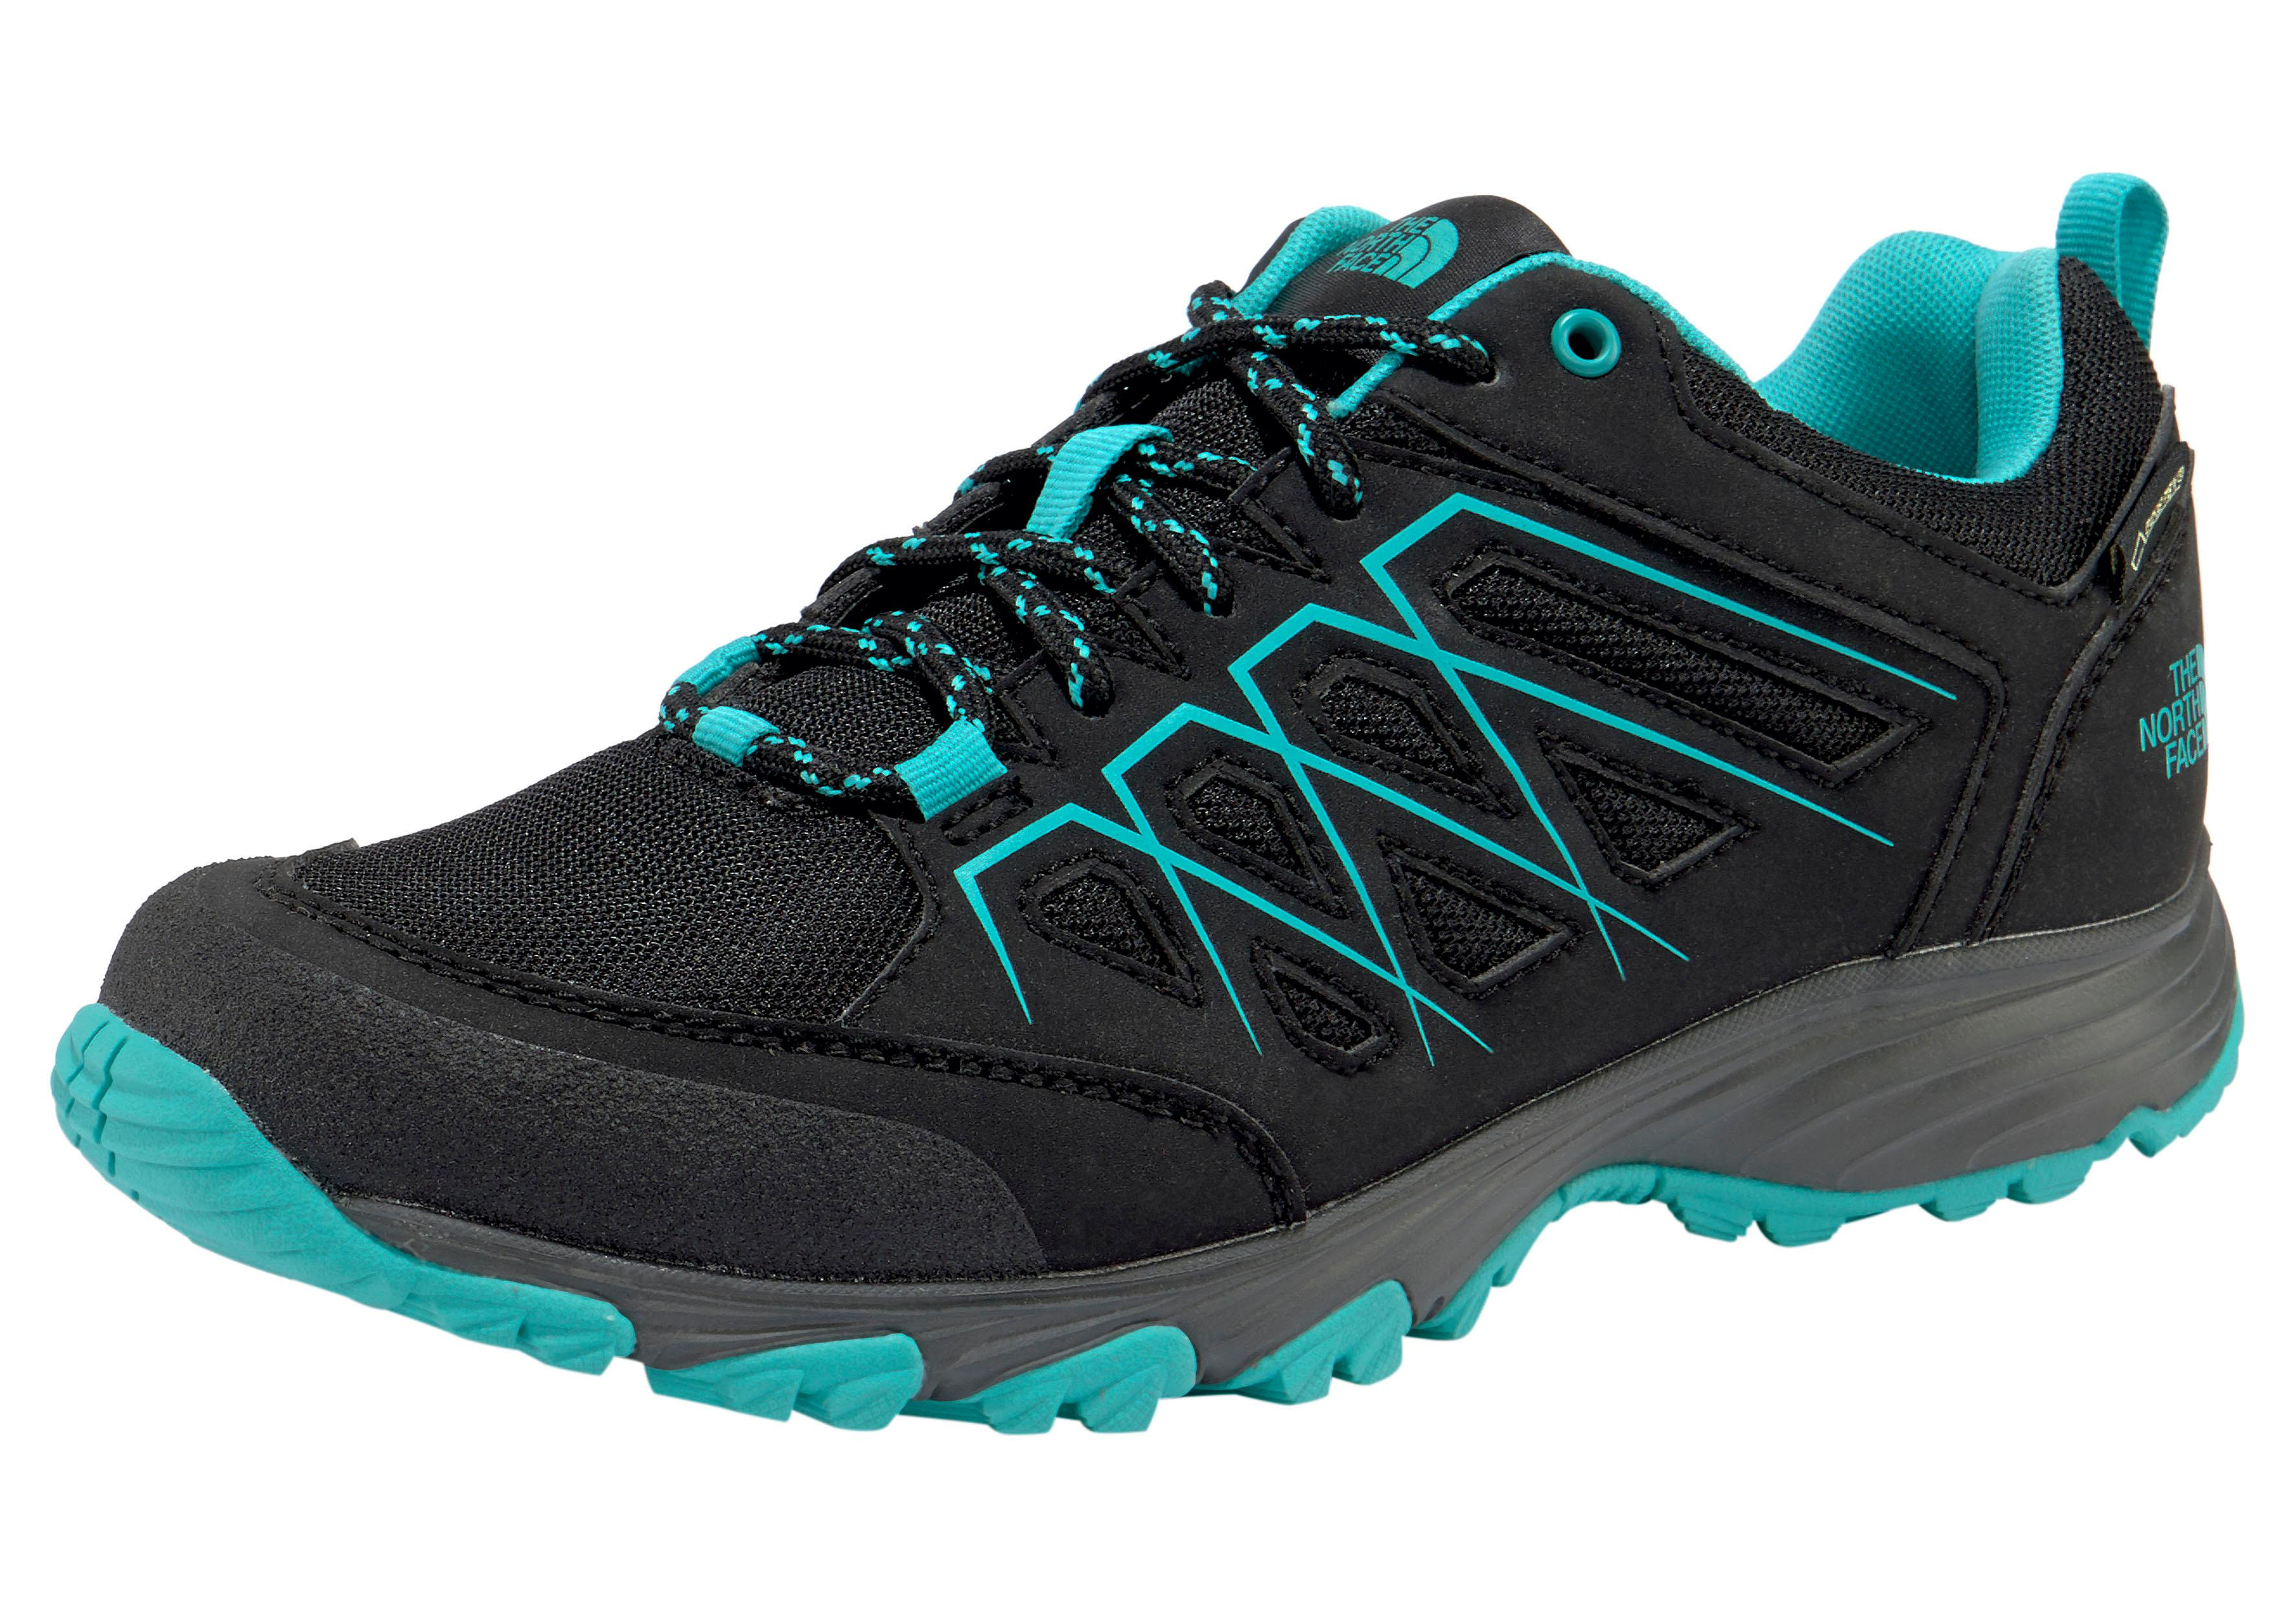 on sale a51cd 7c2a6 The North Face Outdoorschuh »W Venture Fasthike Gore-Tex«